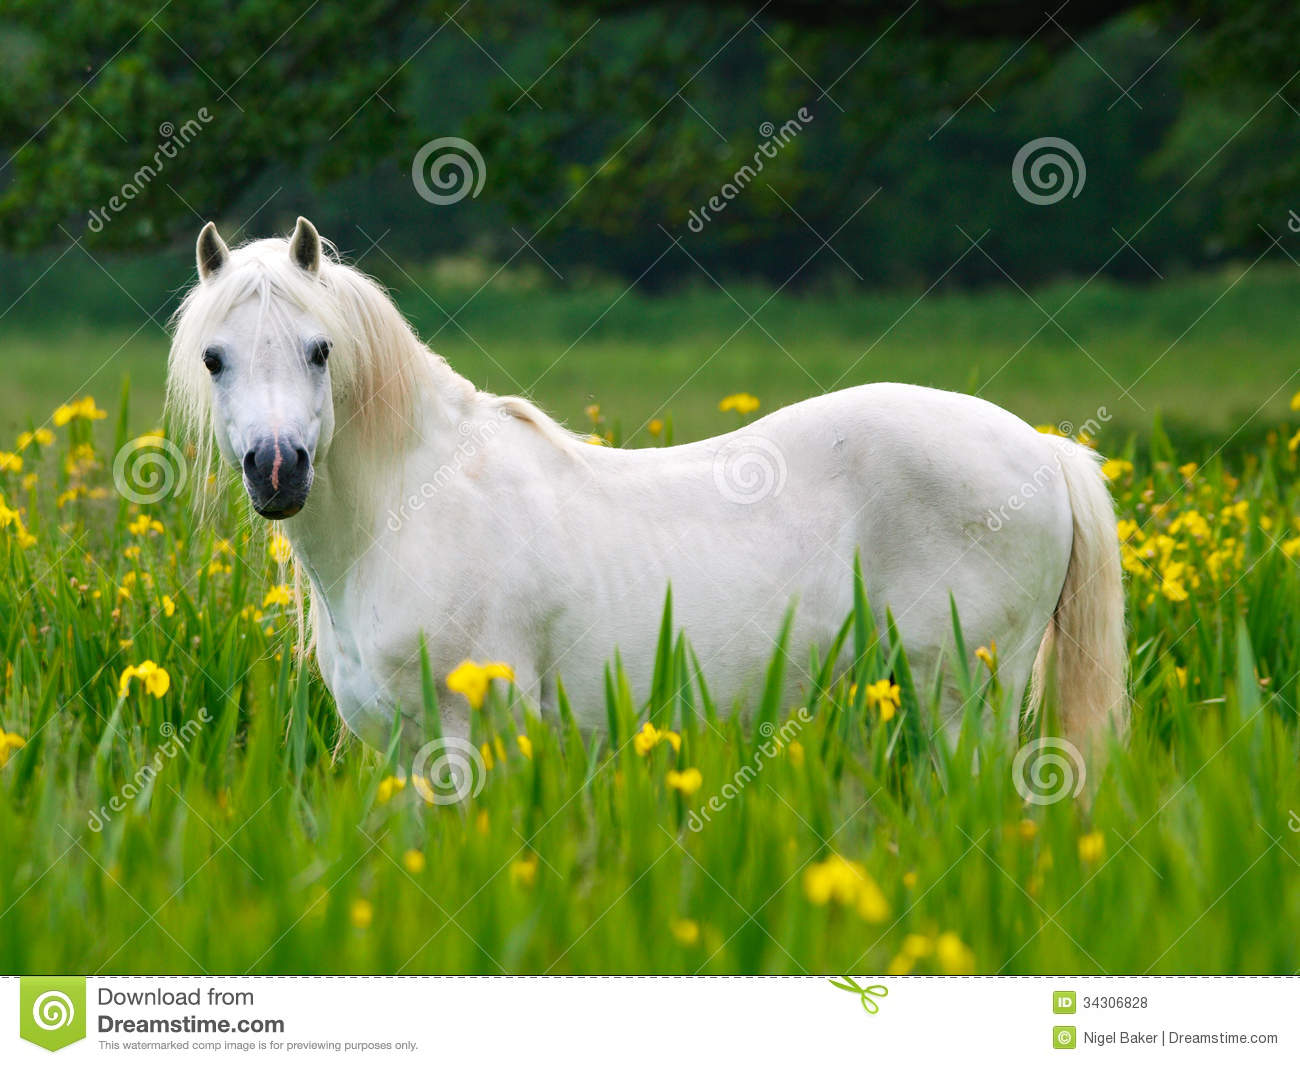 Beutiful beutiful horse royalty free stock photos - image: 34306828